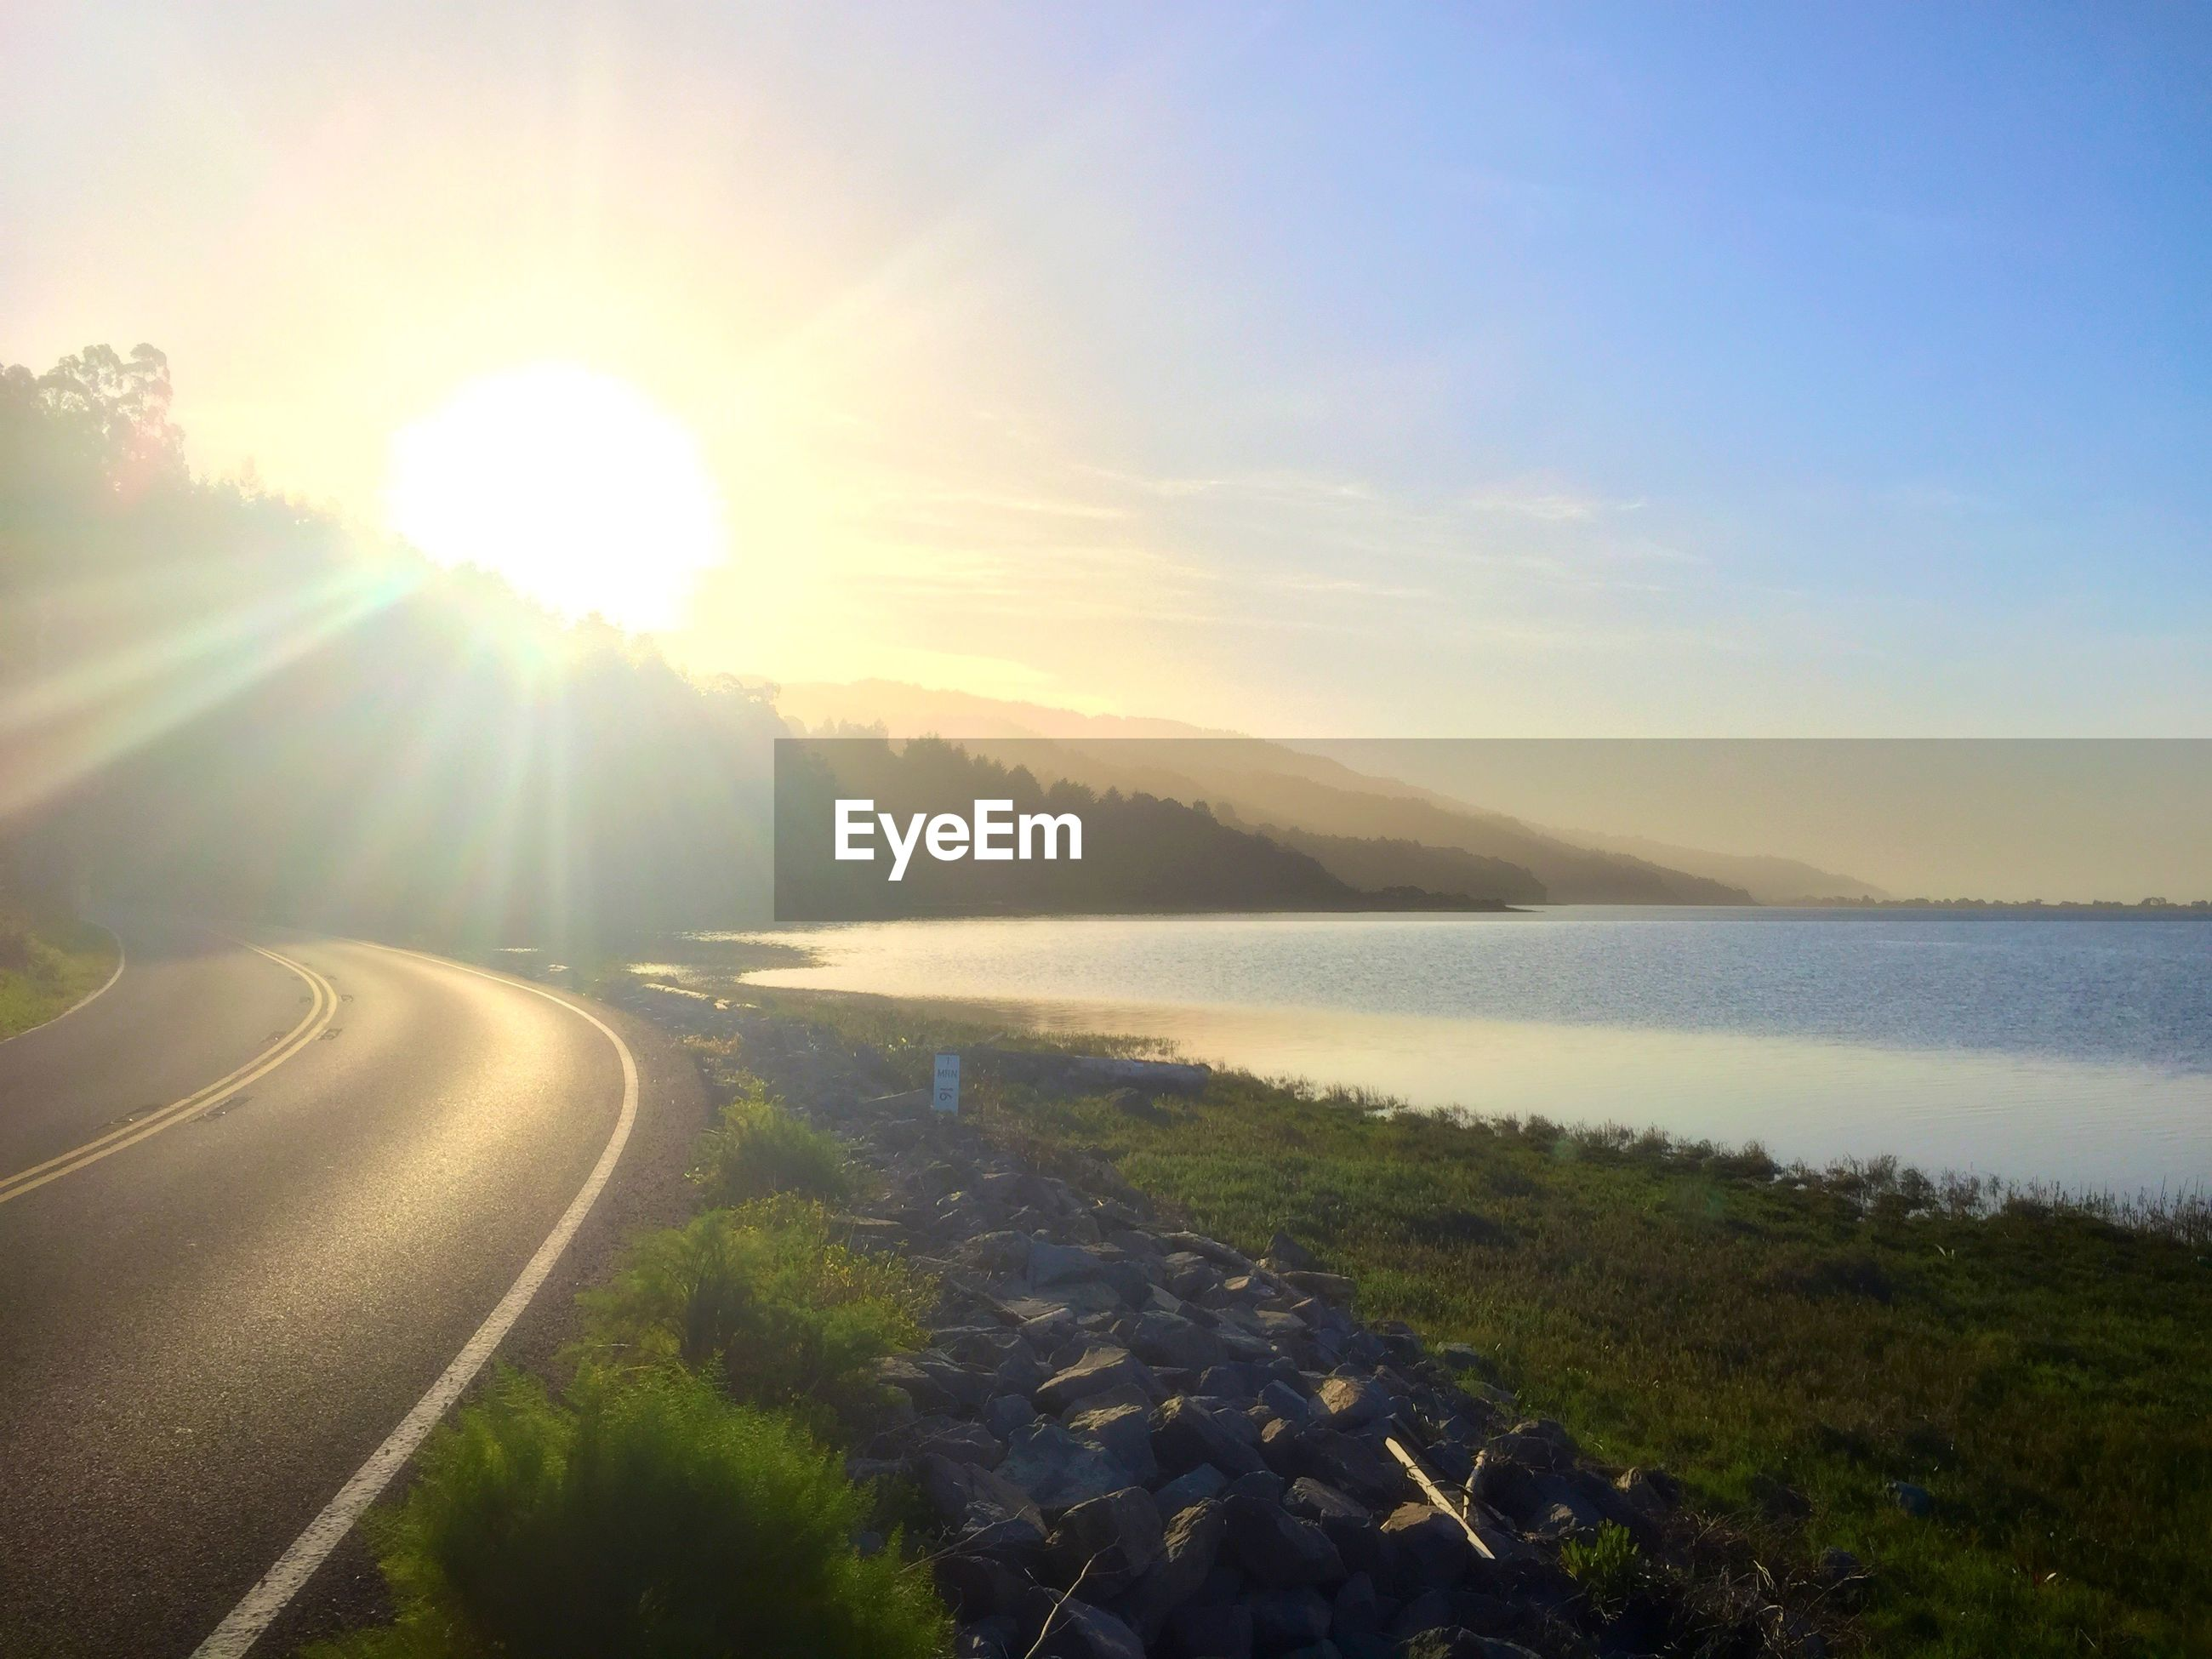 sun, water, sunlight, tranquil scene, sunbeam, tranquility, scenics, sky, road, sea, lens flare, beauty in nature, the way forward, sunset, nature, transportation, reflection, idyllic, landscape, diminishing perspective